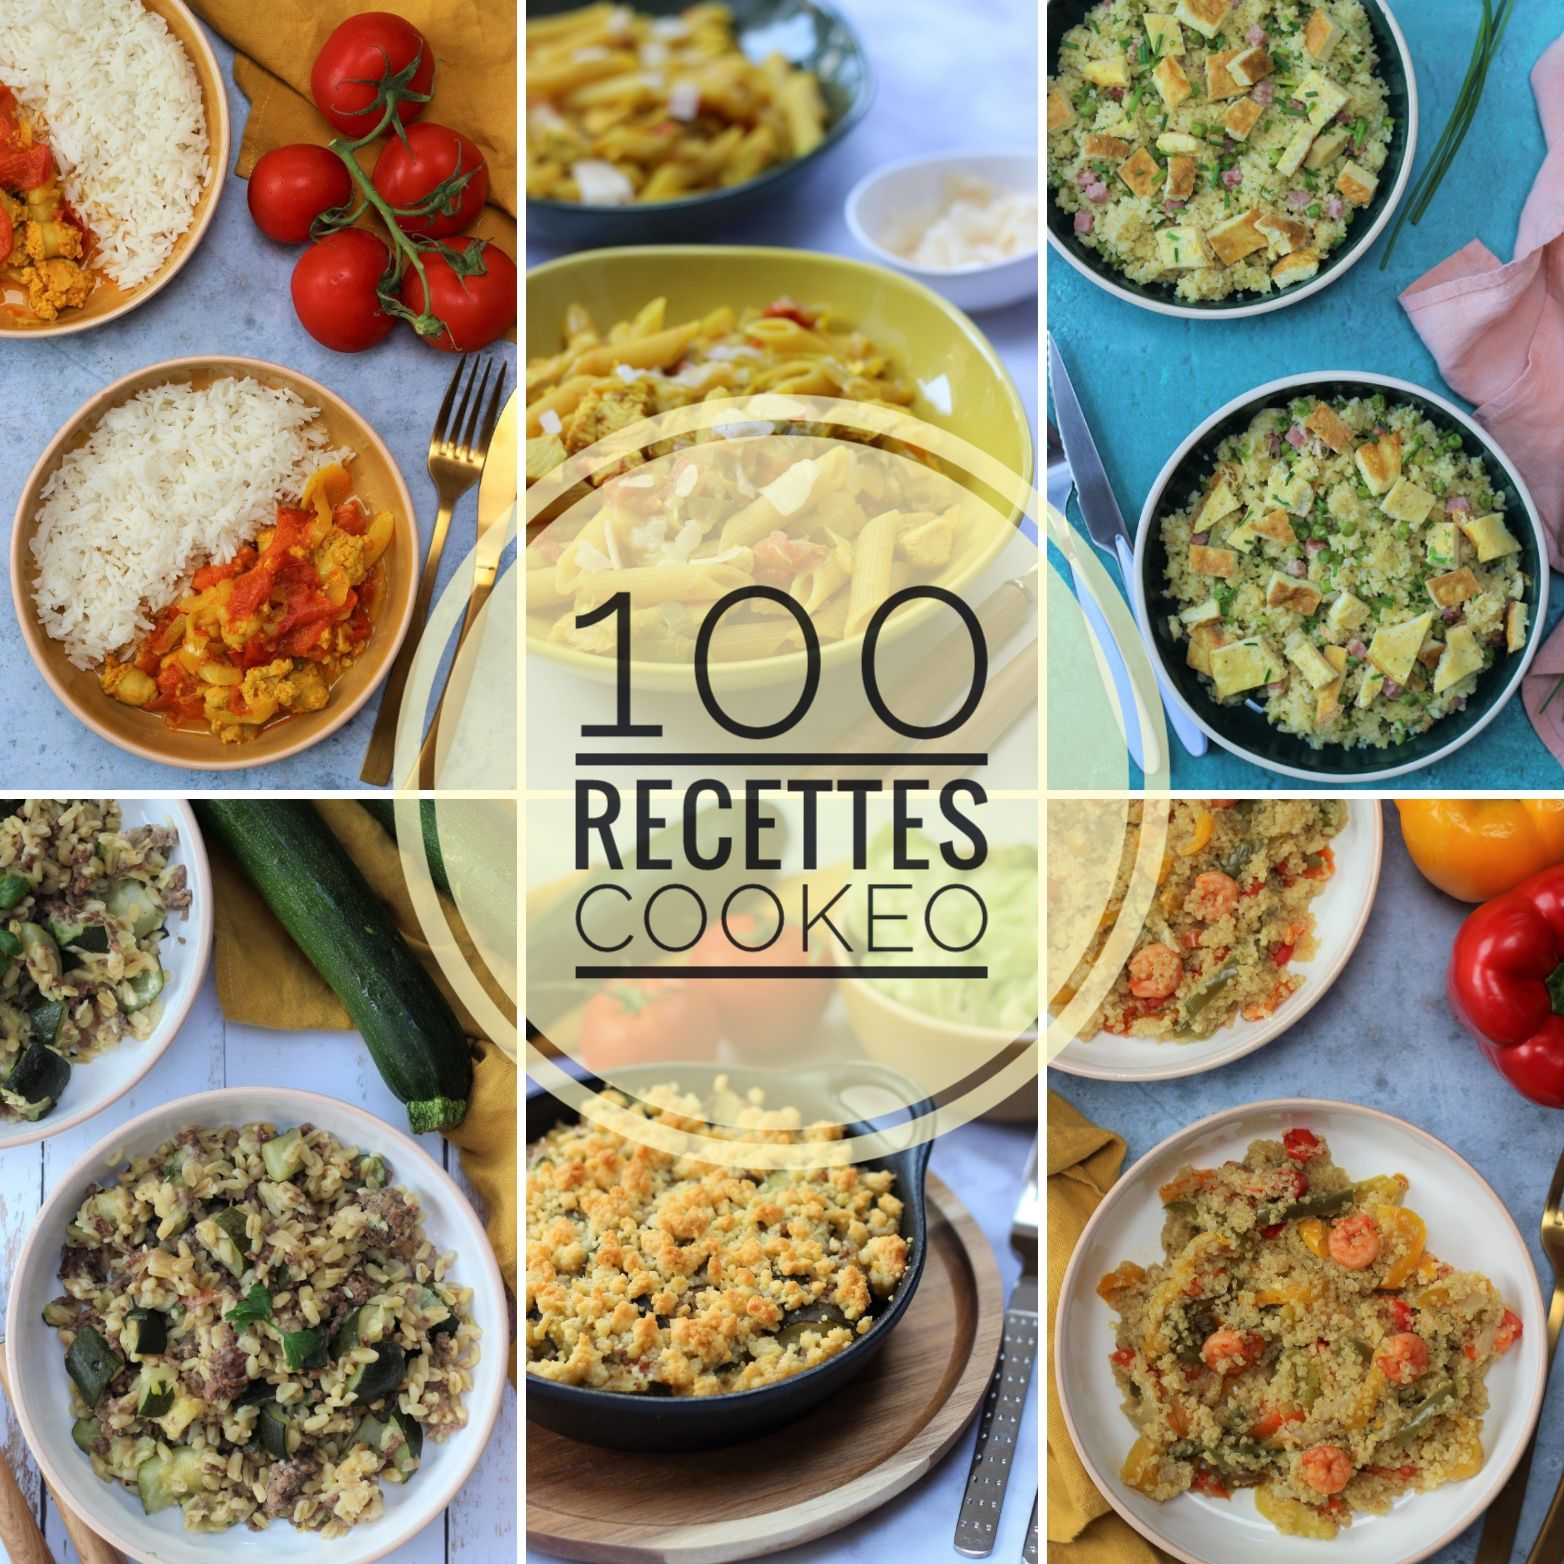 COMPIL RECETTES COOKEO